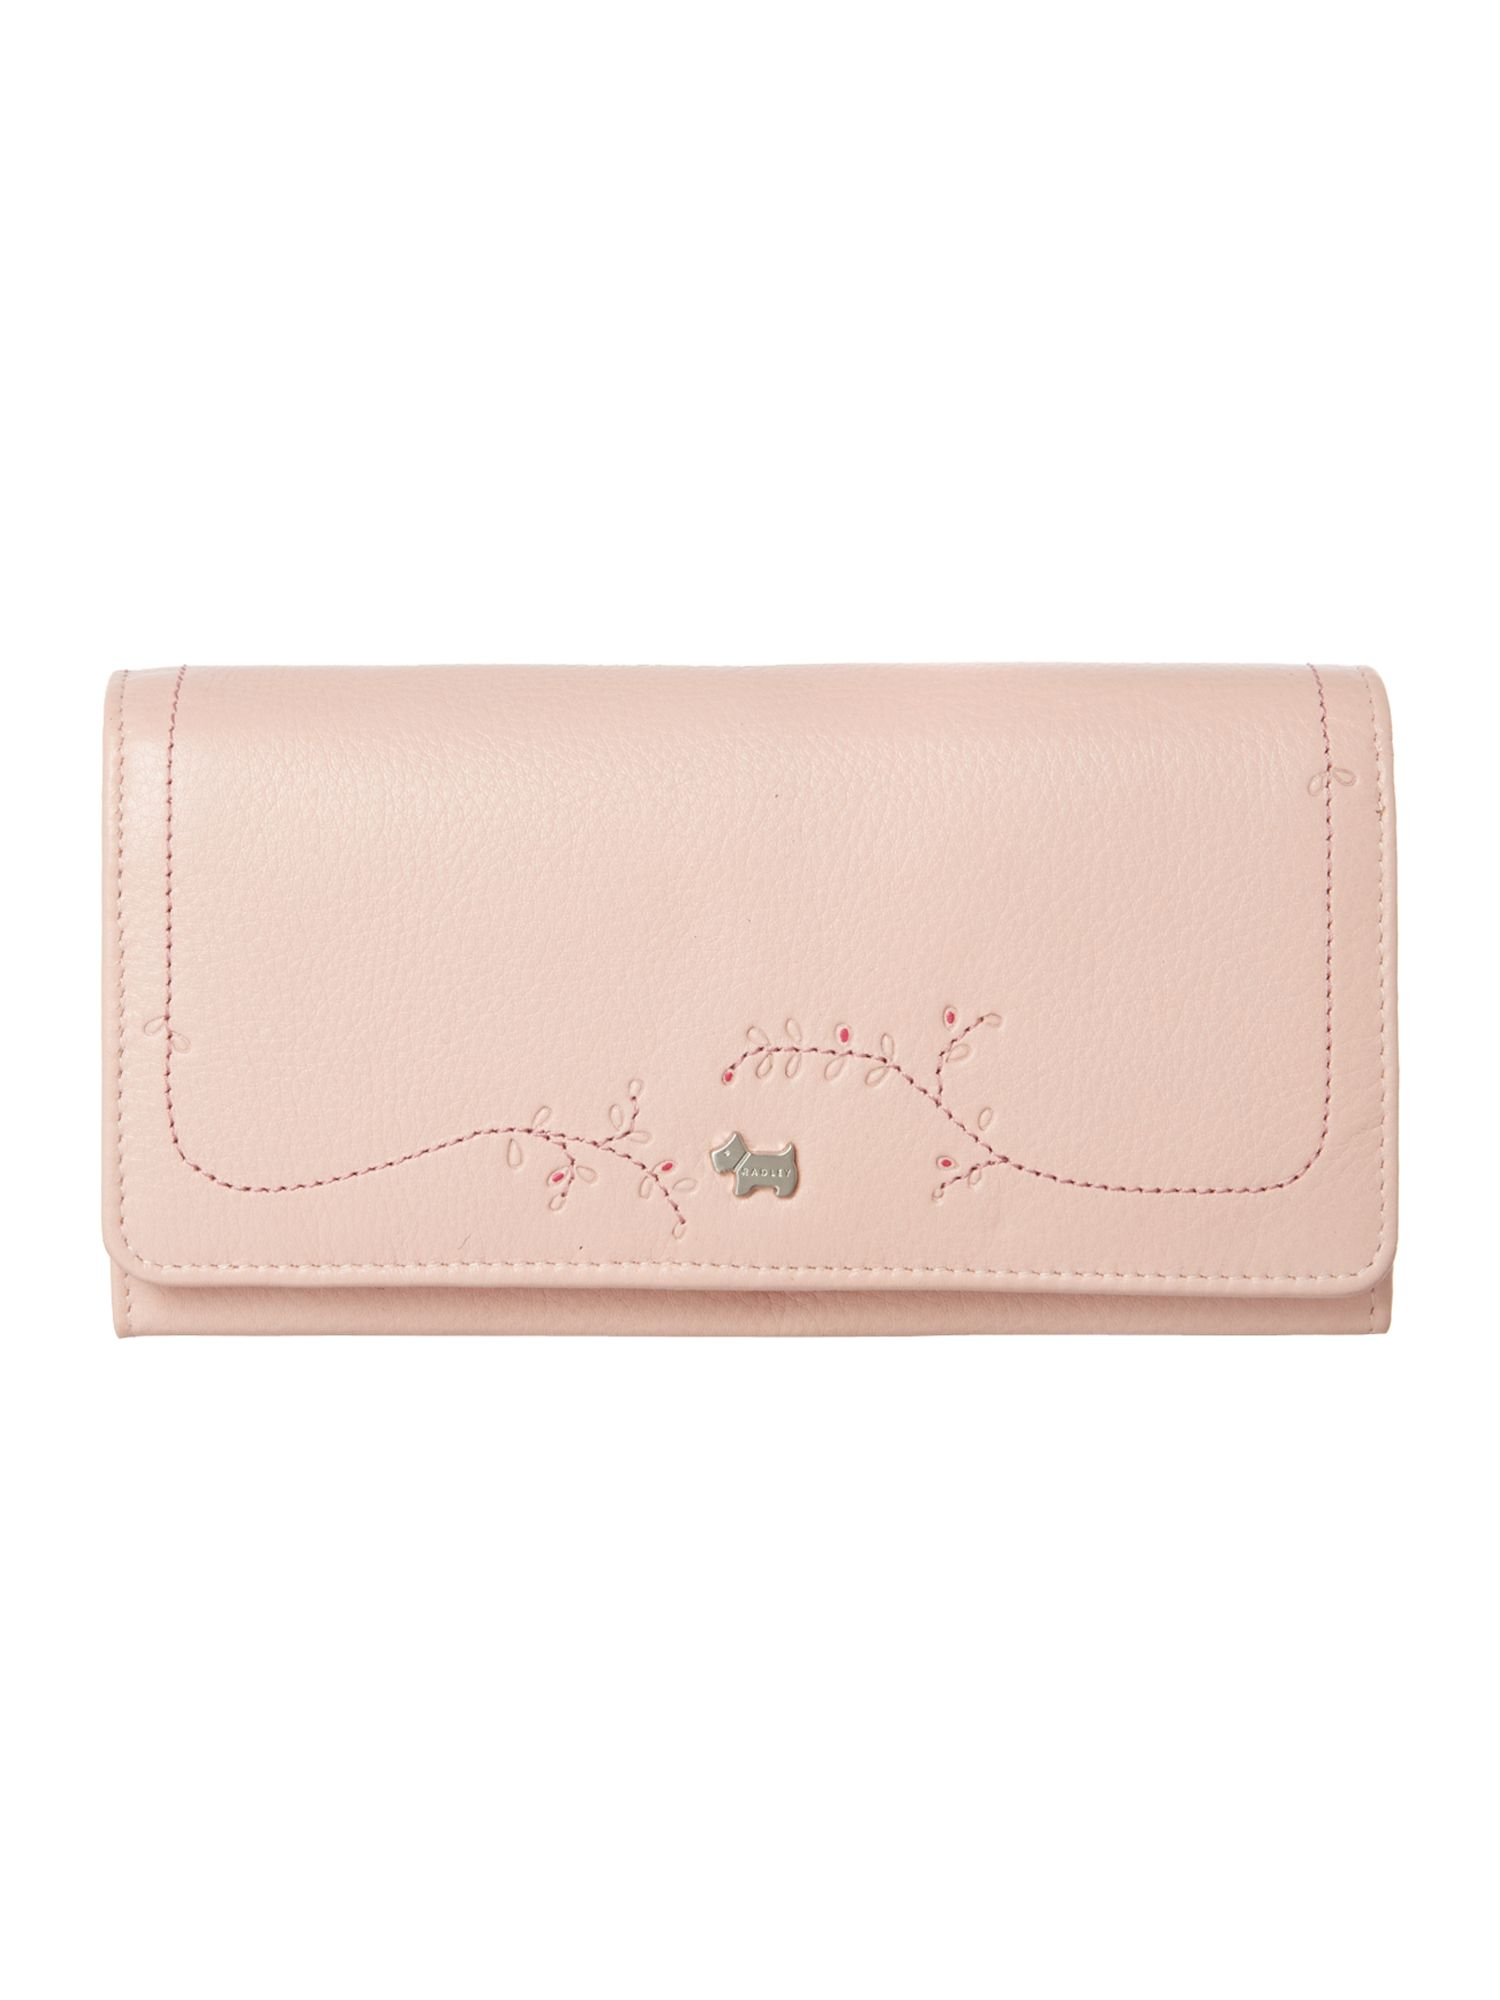 Little laurels pink large flapover purse